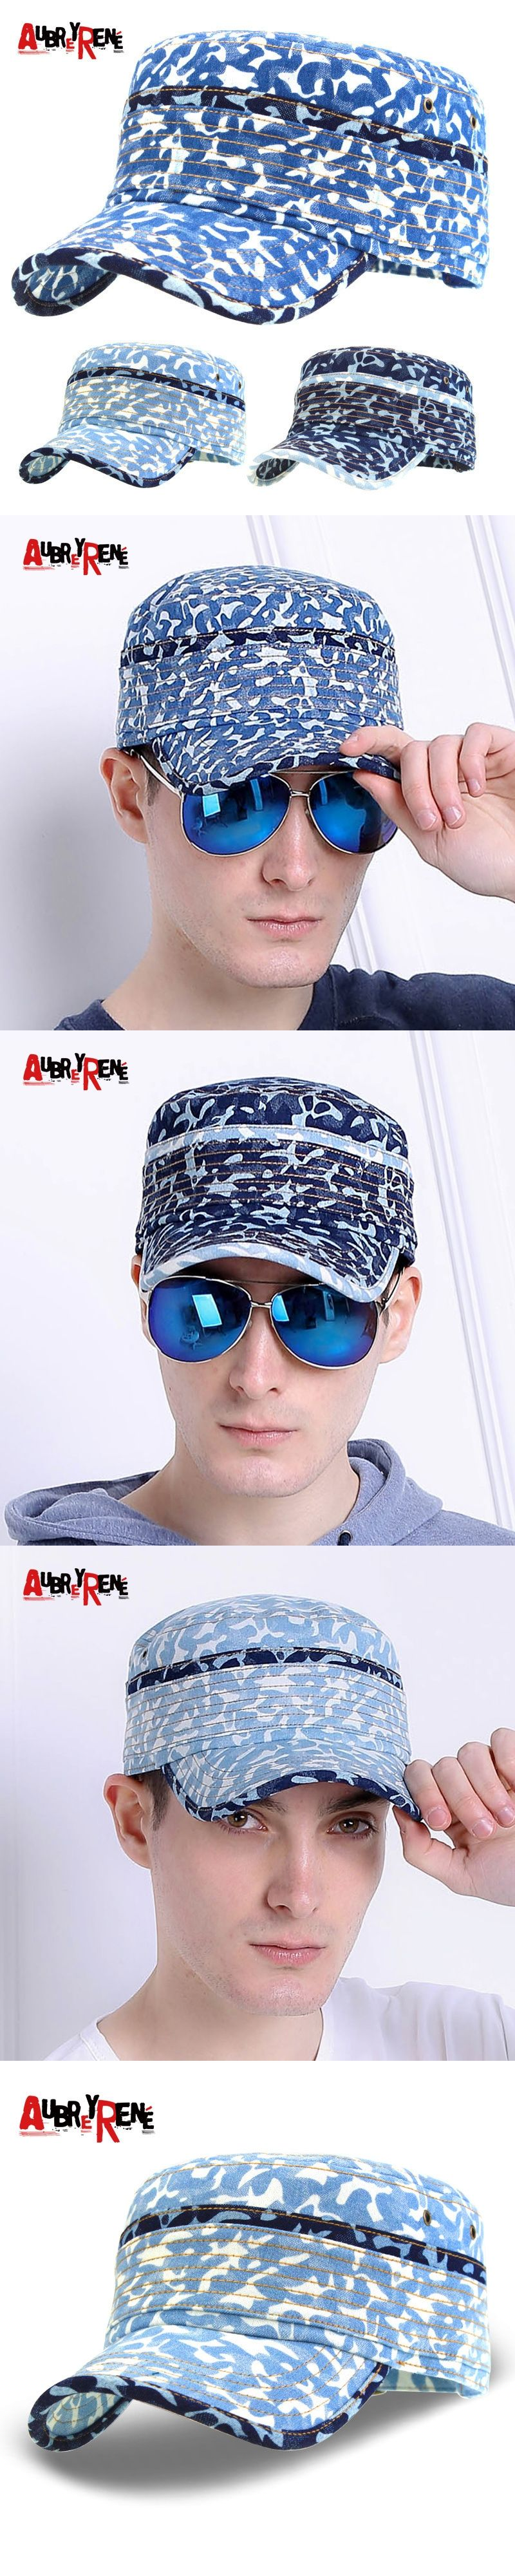 cfe3a4613af AUBREYRENE 2017 men outdoor camouflage military hat combat hat for male  army flat top caps cool denim blue soldier caps snapback